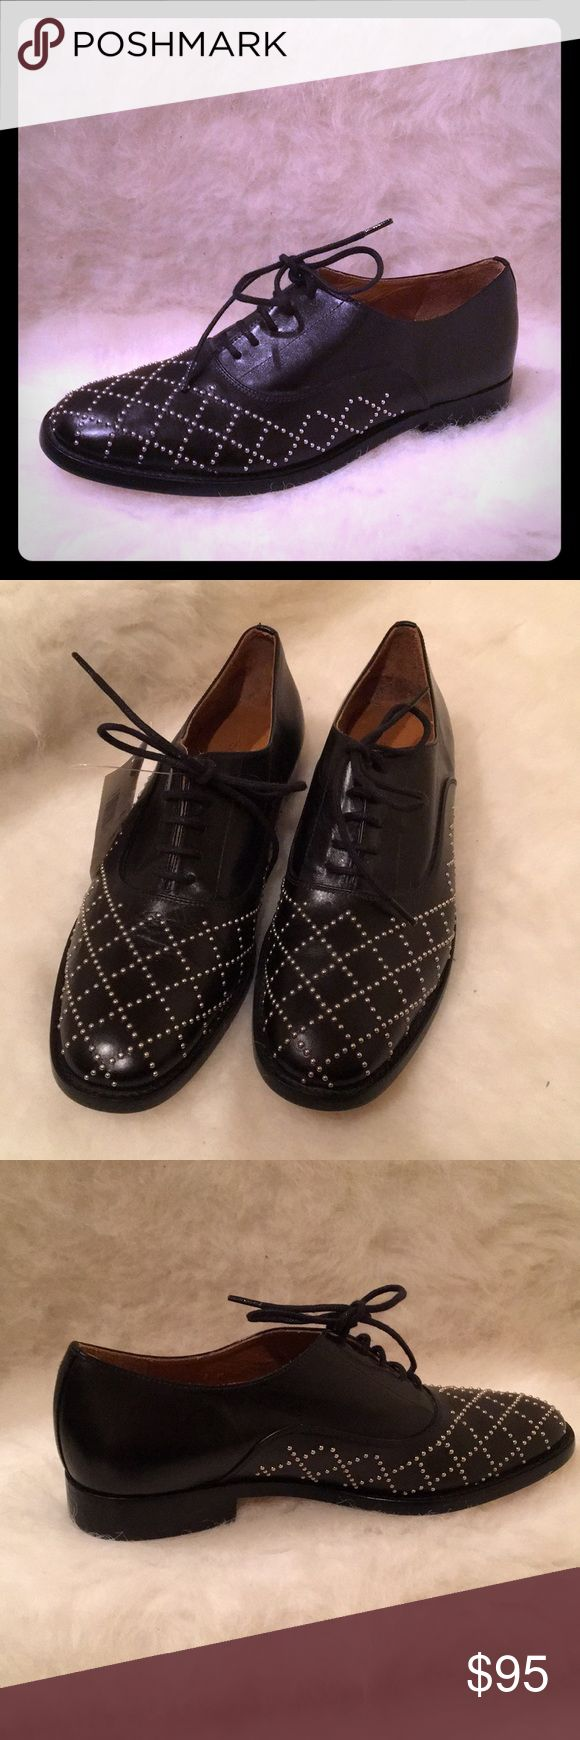 "NWT Delman Black Leather Lace-up Studded Oxford NWT Luxurious leather upper with leather lining and leather sole. Nickel tone small studs. Made in Spain. Approx 3/4"" heel height. While these are unworn, NWT salon shoes, see the last photo for a very minor uneven area on bottom of heel of left shoes. A gorgeous, comfortable oxford. Delman Shoes Flats & Loafers"